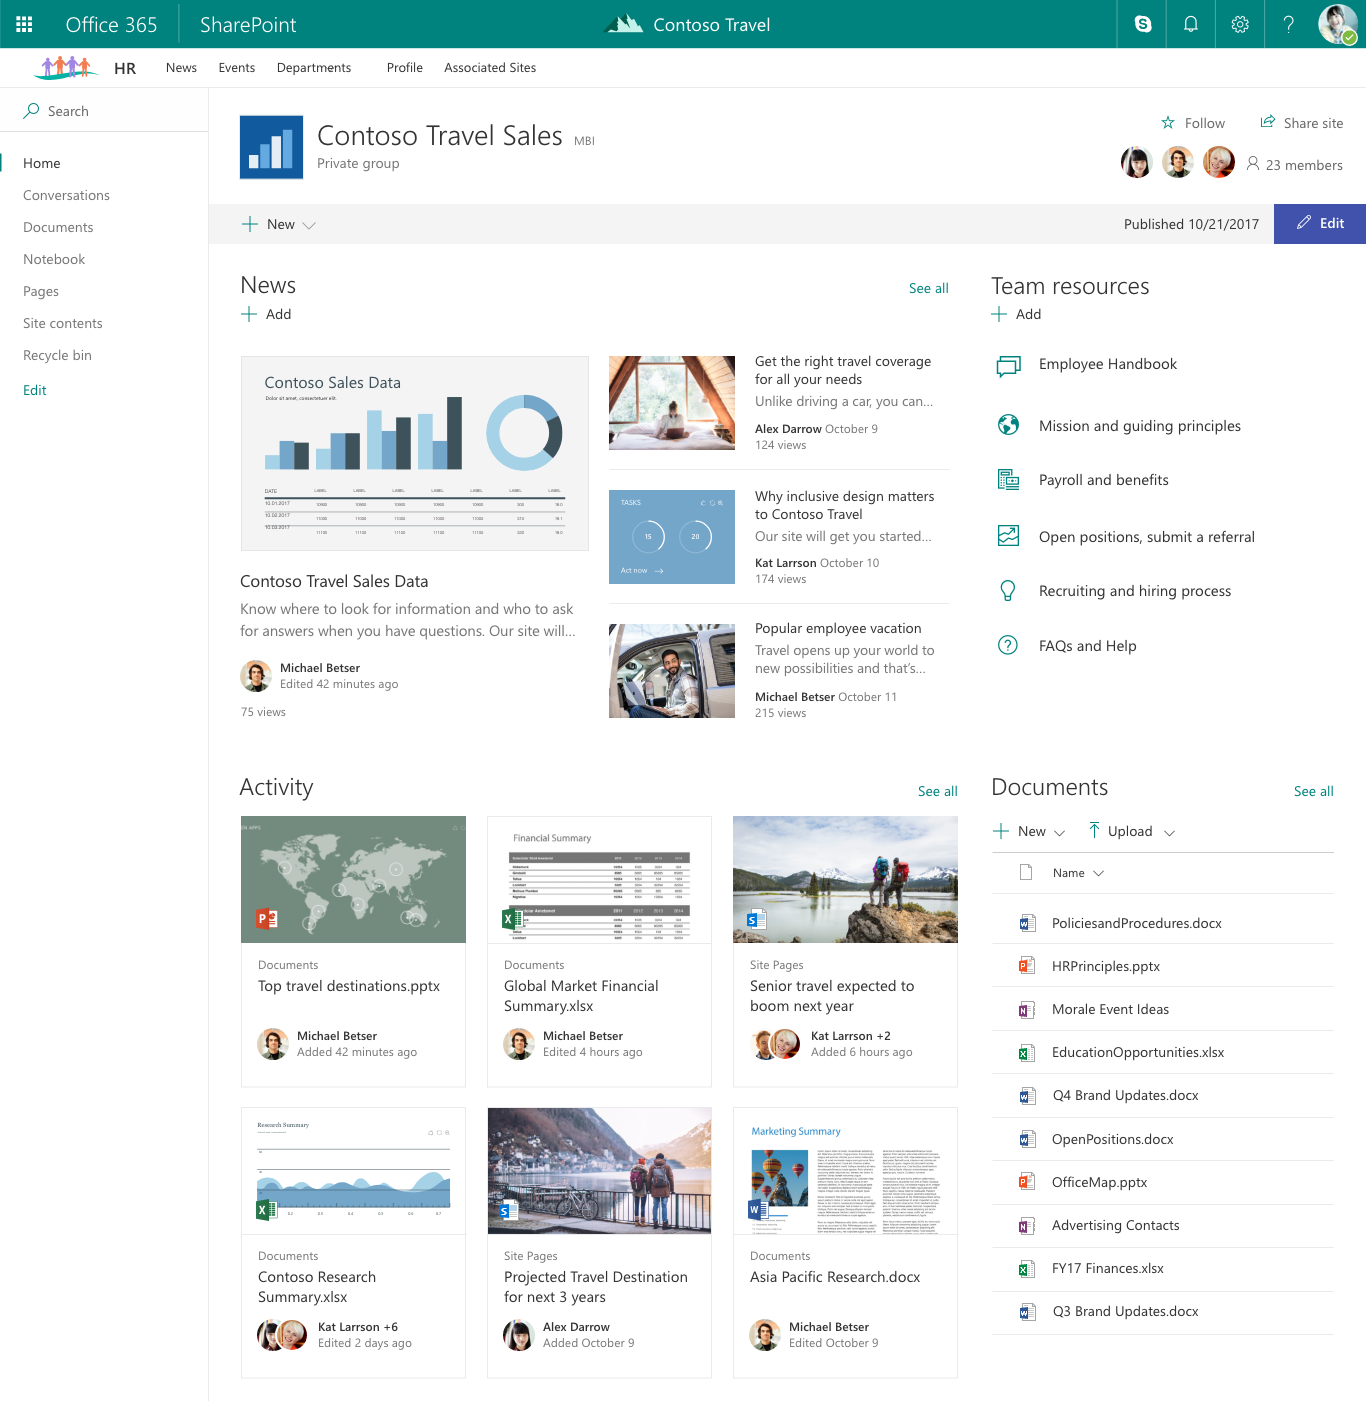 Organize your intranet with SharePoint hub sites